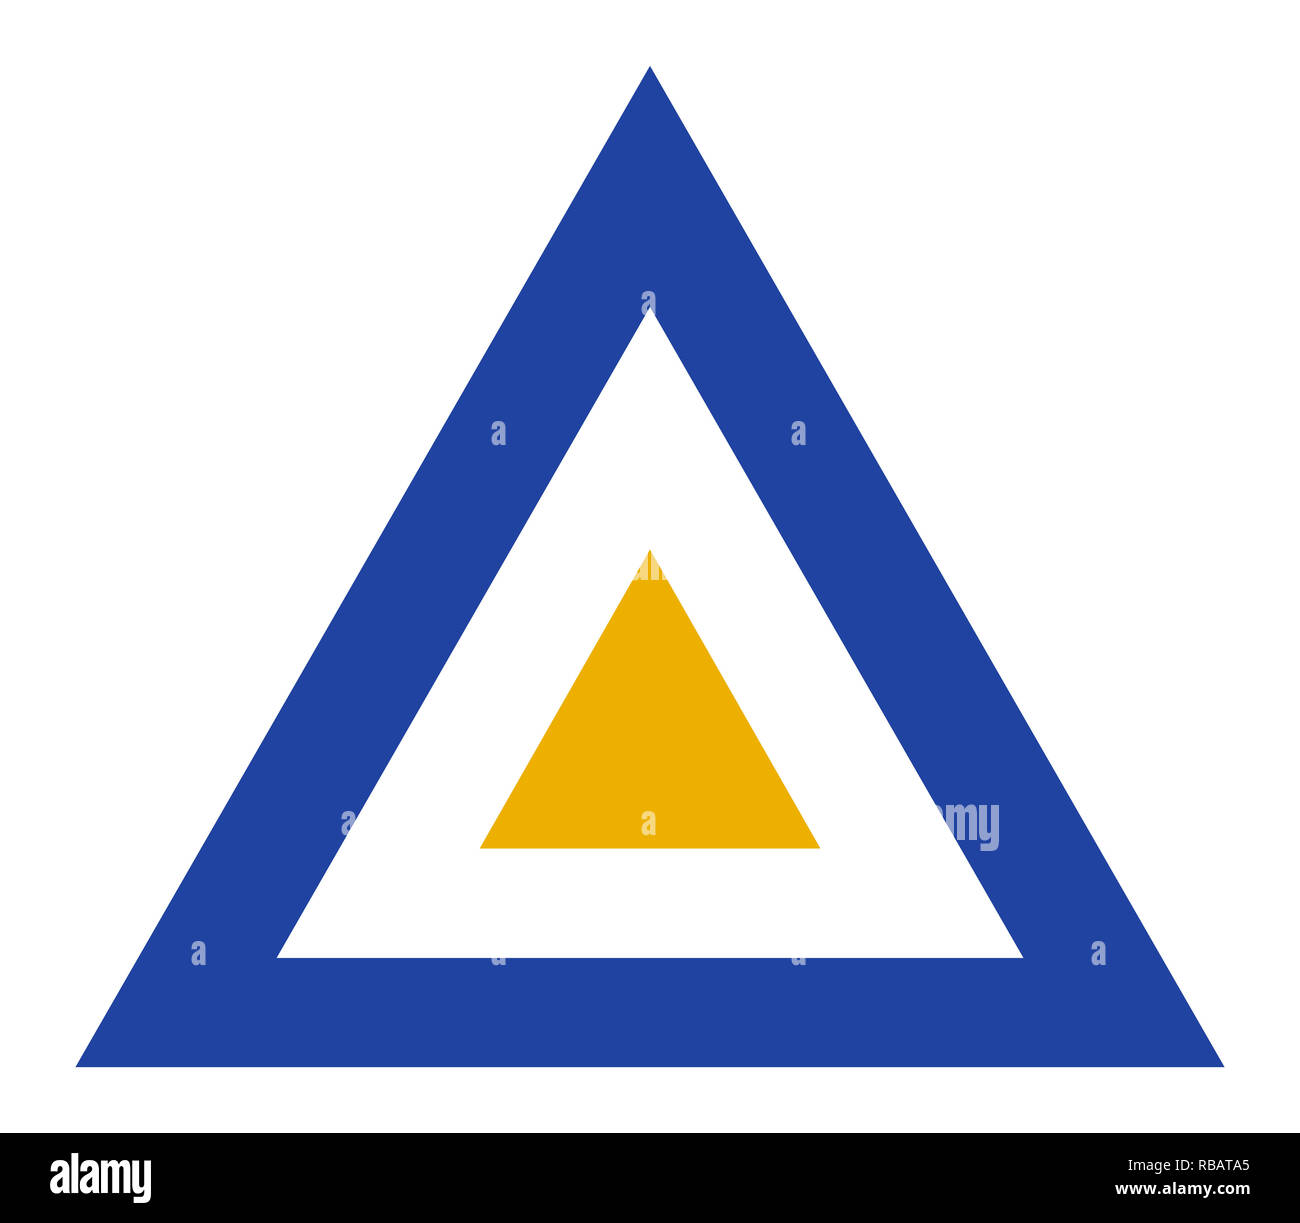 Myanmar country roundel flag based triangle symbol - Stock Image